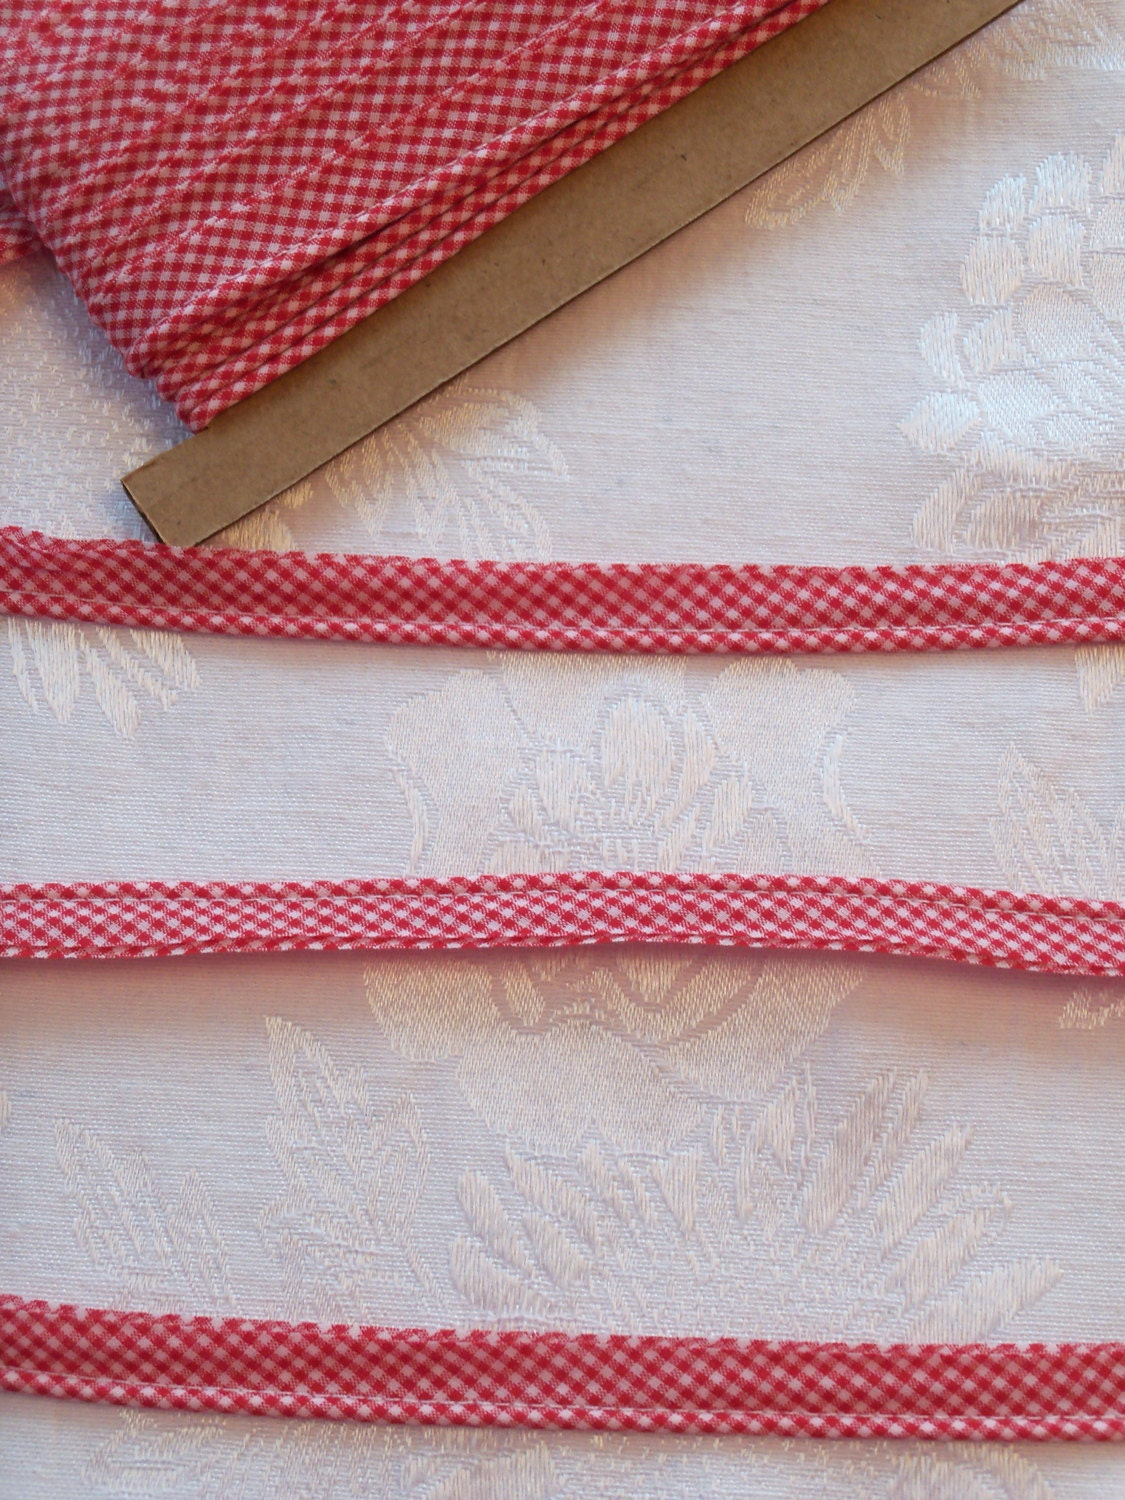 Gingham Mini Piping   Pink  Piping for Childrens Clothes  Doll Clothes  Cording 18  Overall width .5   3 Yard Package